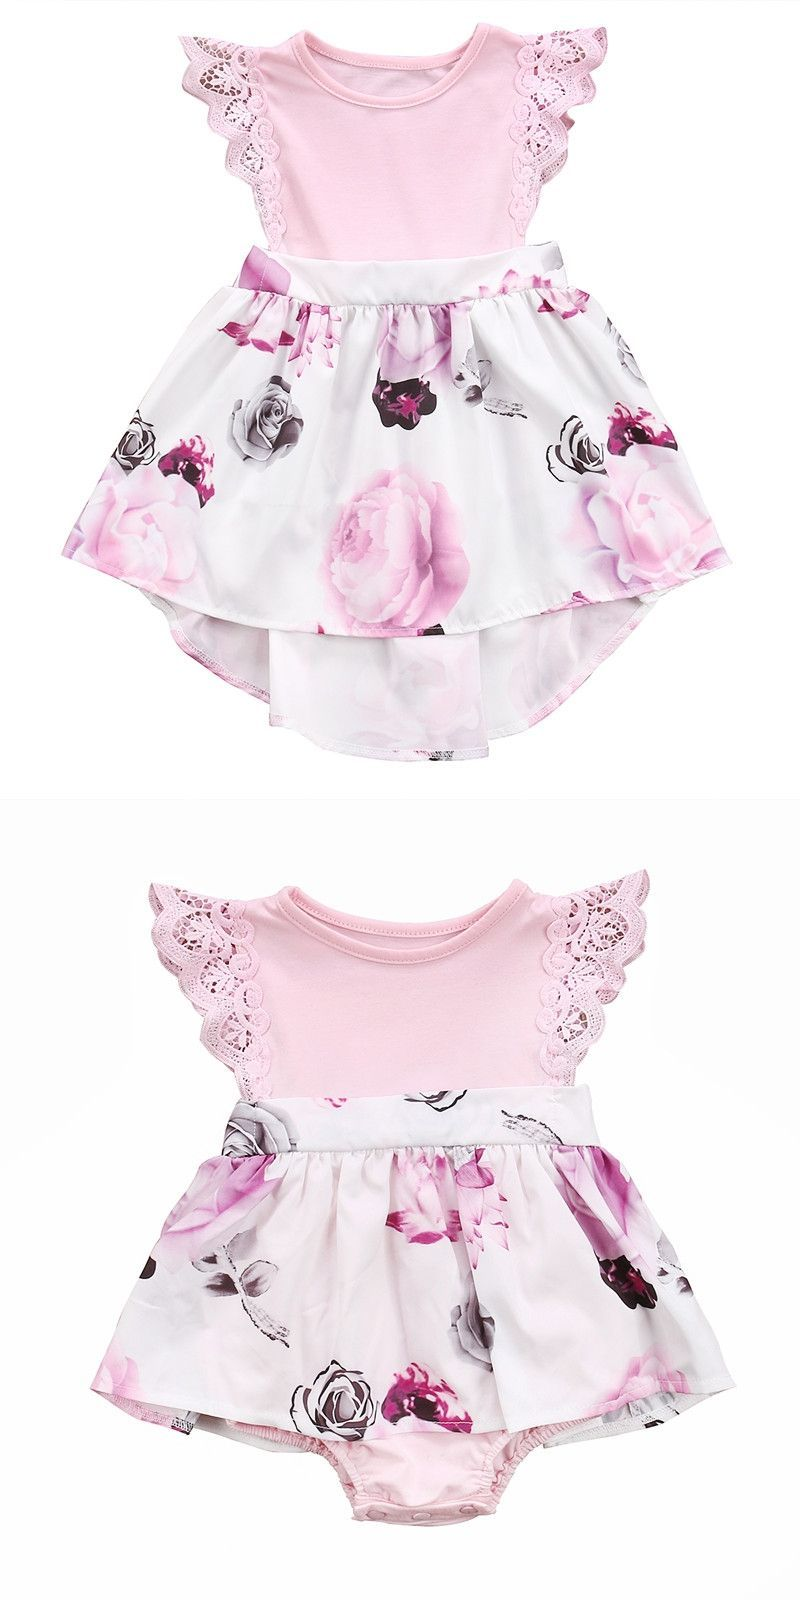 ad006867f7ccb Family Sister Floral Matching Clothing Newborn Baby girls Kids lace Summer Floral  Romper &Dress